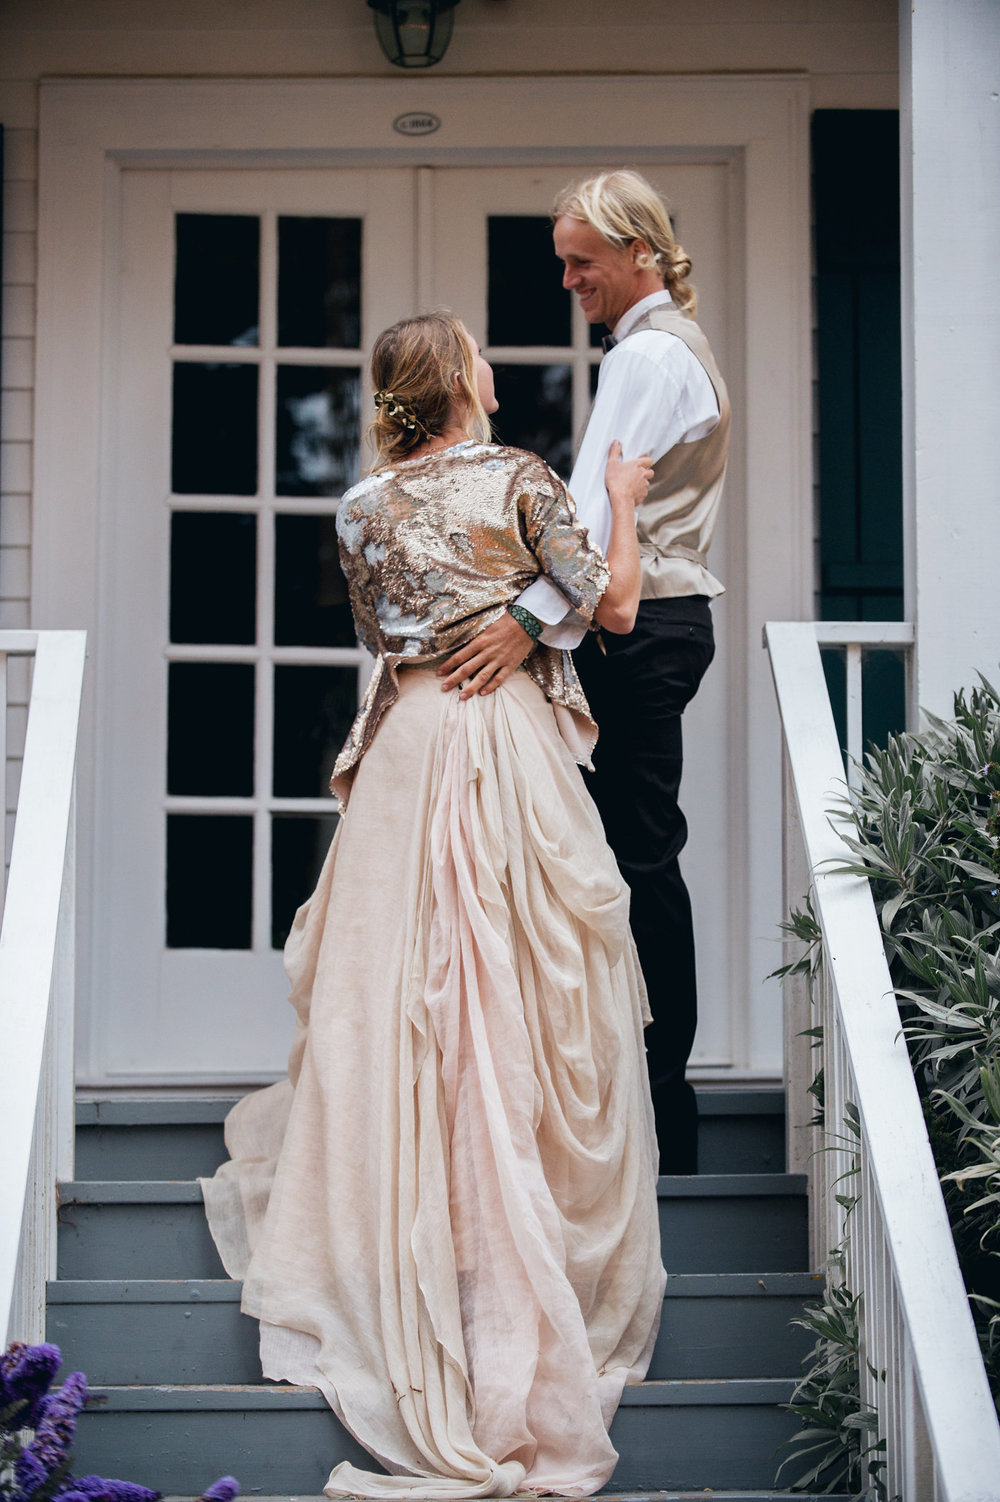 Carol Hannah Bridal Tritea, Kensington, Sequin Smoking Jacket Silver Linings Veil1167.jpg